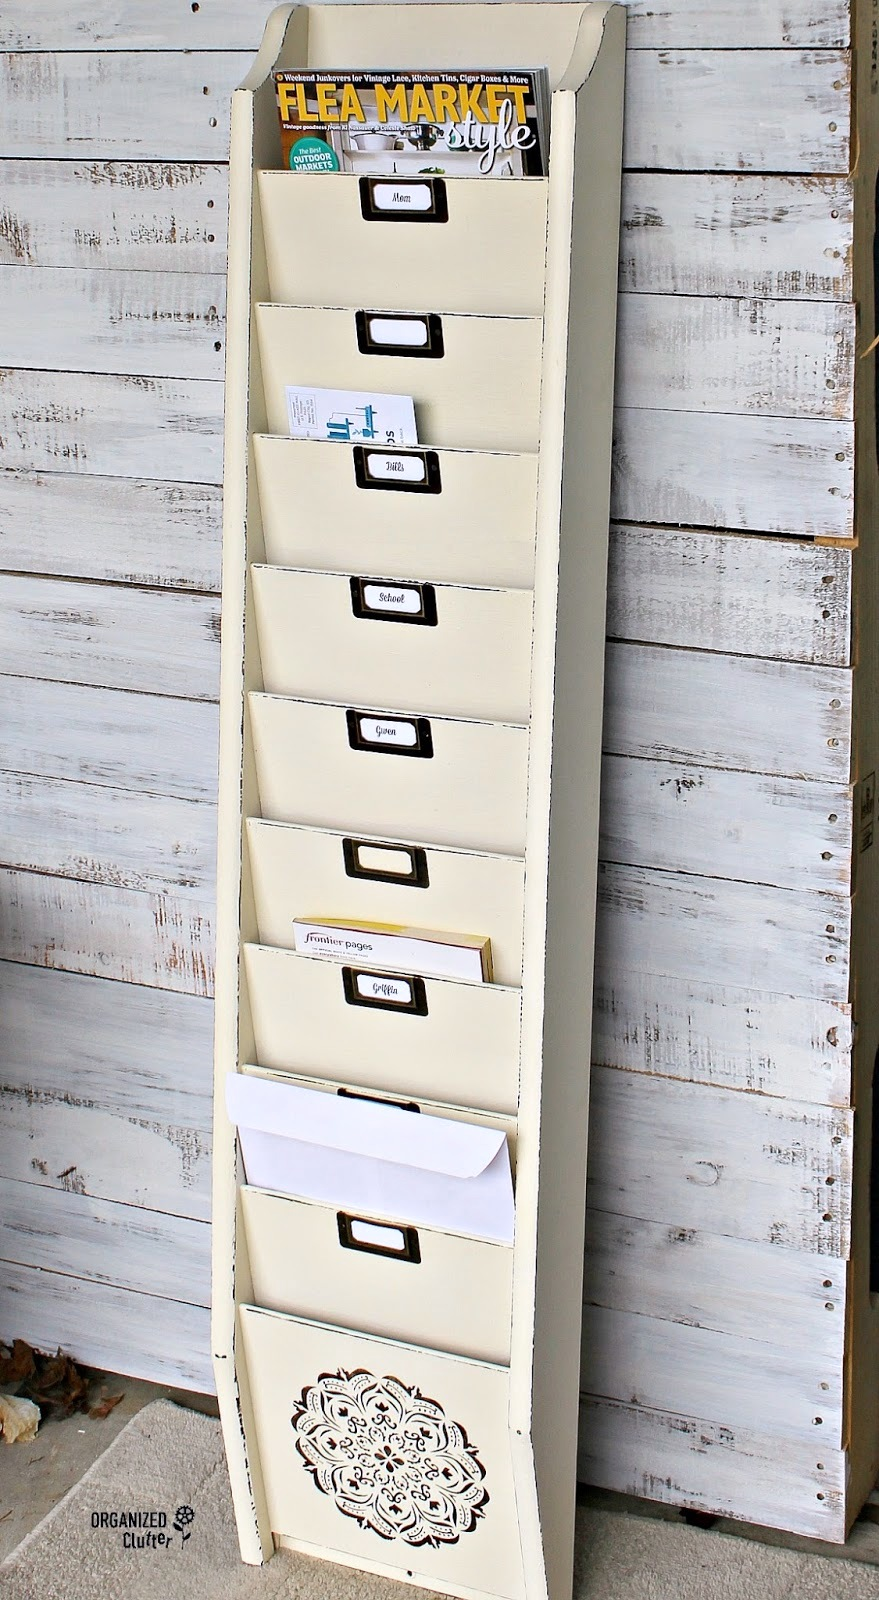 Magazine holder into file organizer, by Organized Clutter, featured on Funky Junk Interiors